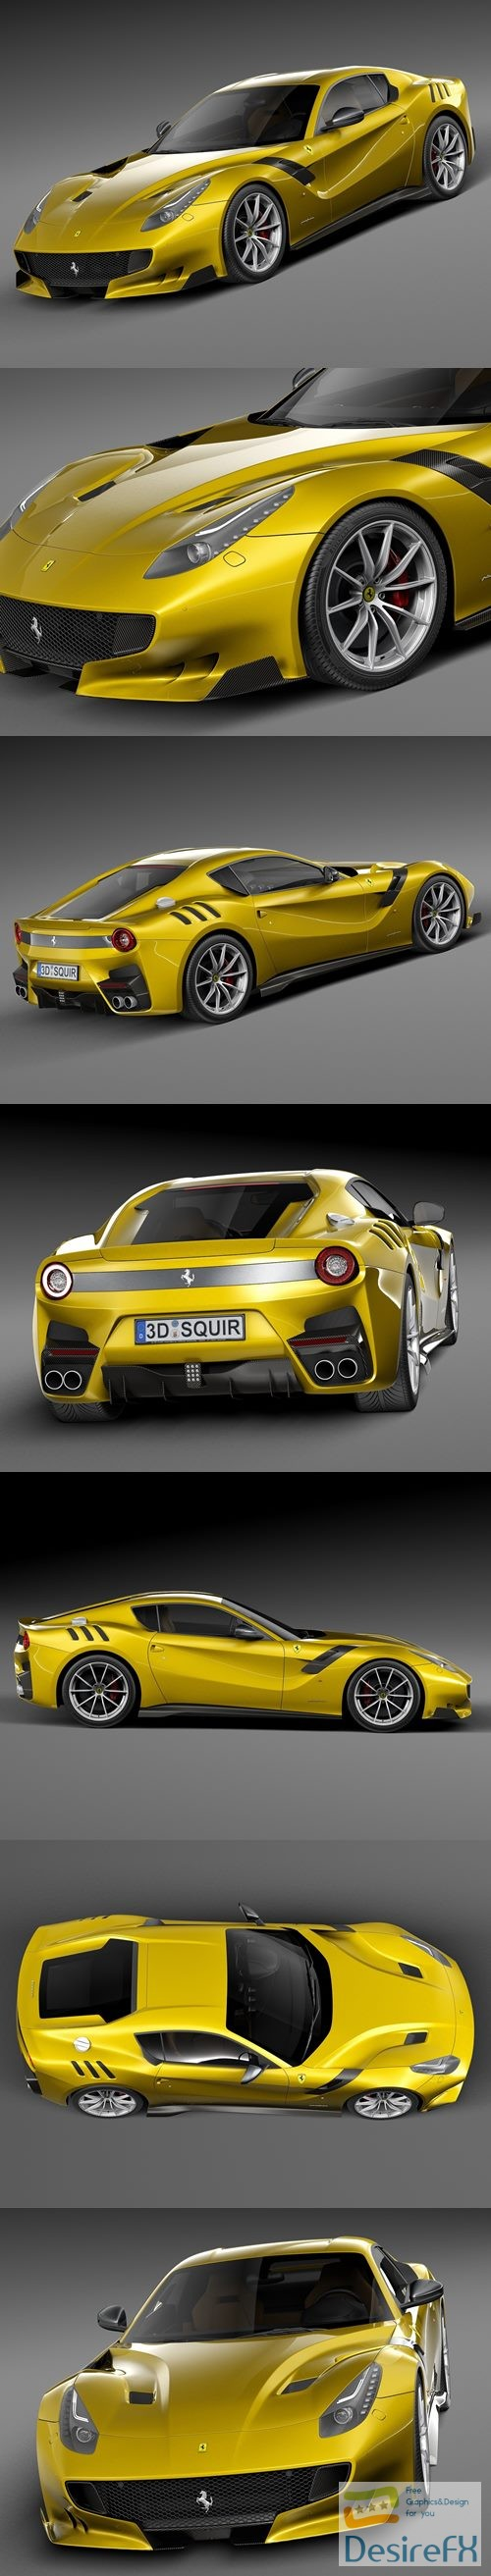 3d-models - Ferrari F12tdf 2016 3D Model